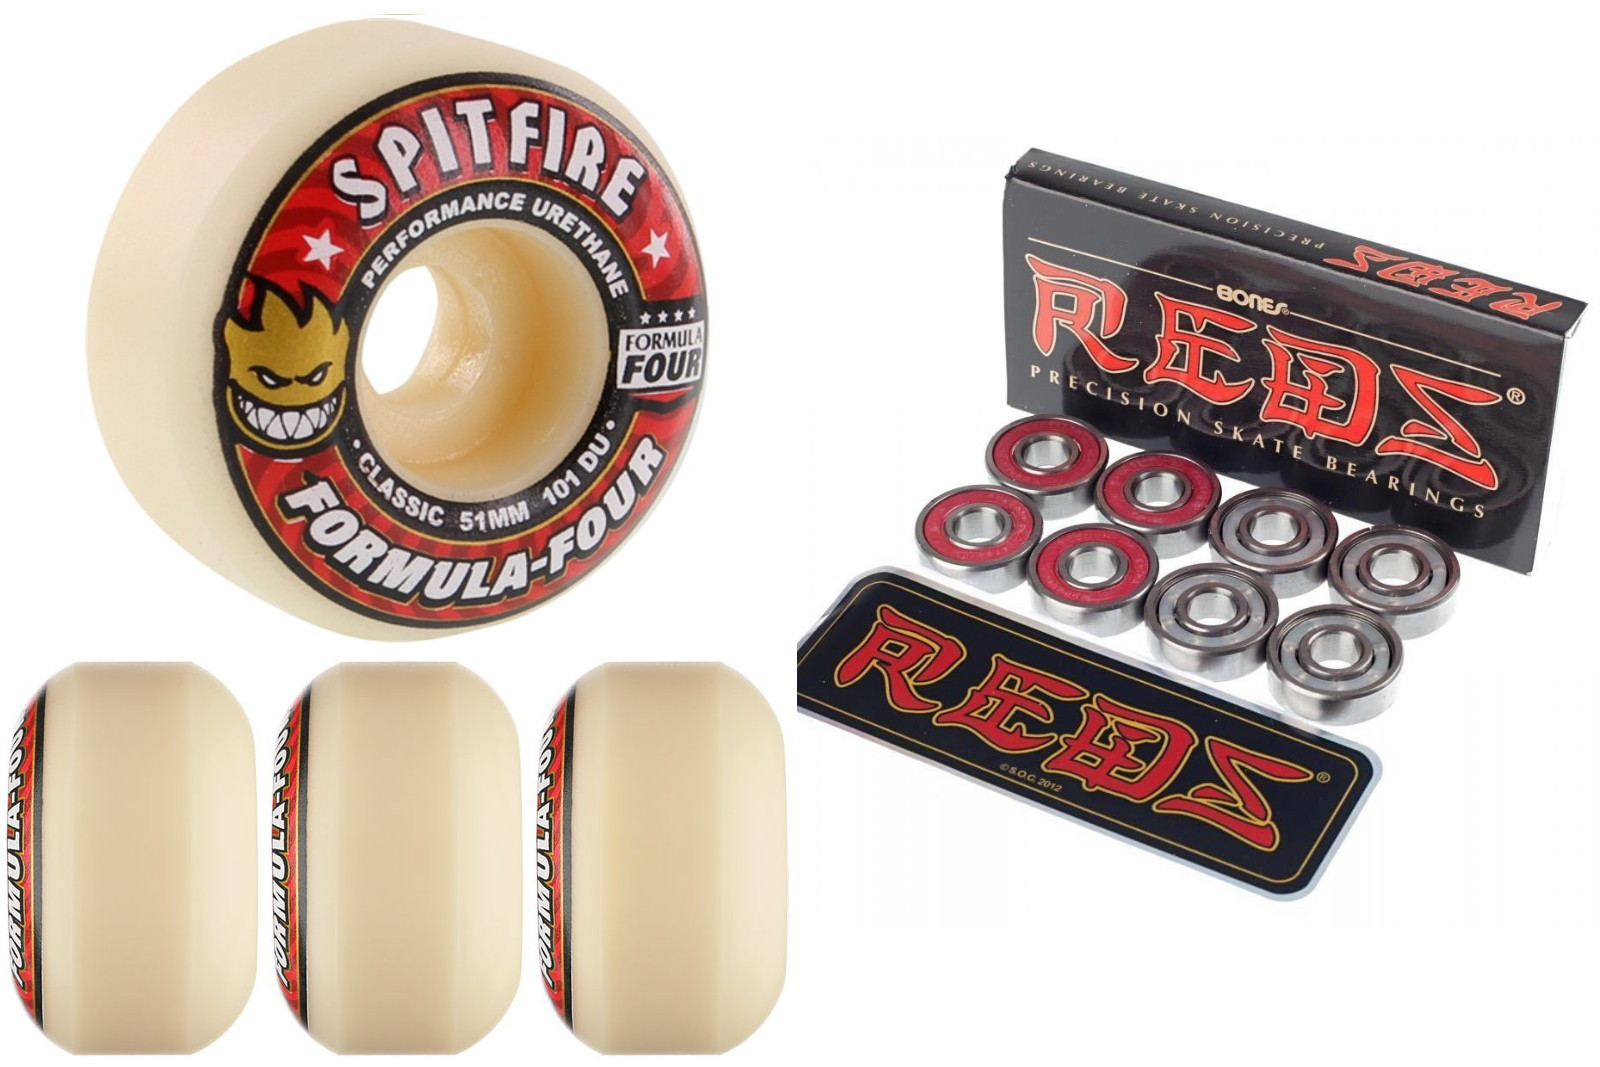 Spitfire Skateboard Wheels F4 Formula 4 Four Red 51mm 101d Classic with Bones Reds Bearings new FREE POST